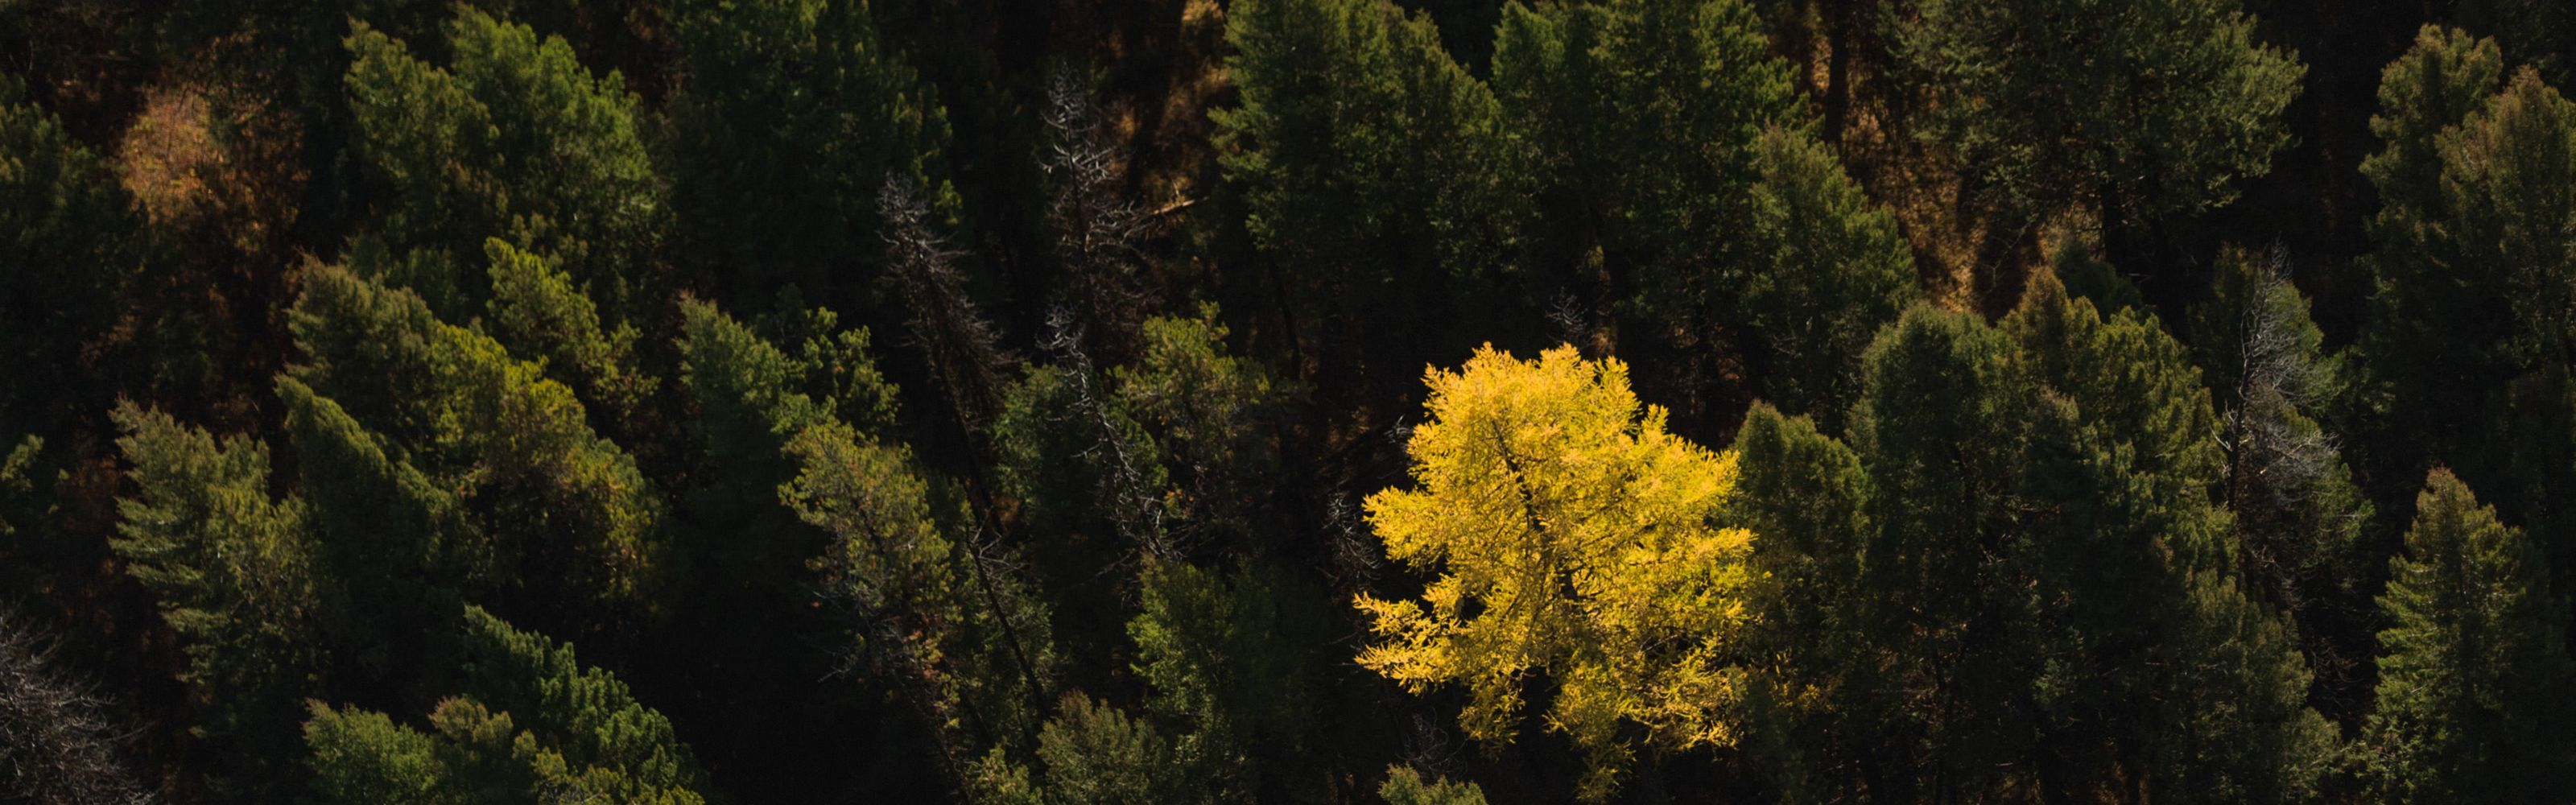 Western Larch (Larix occidentalis) in The Nature Conservancy's Great Western Checkerboards Project, Montana.